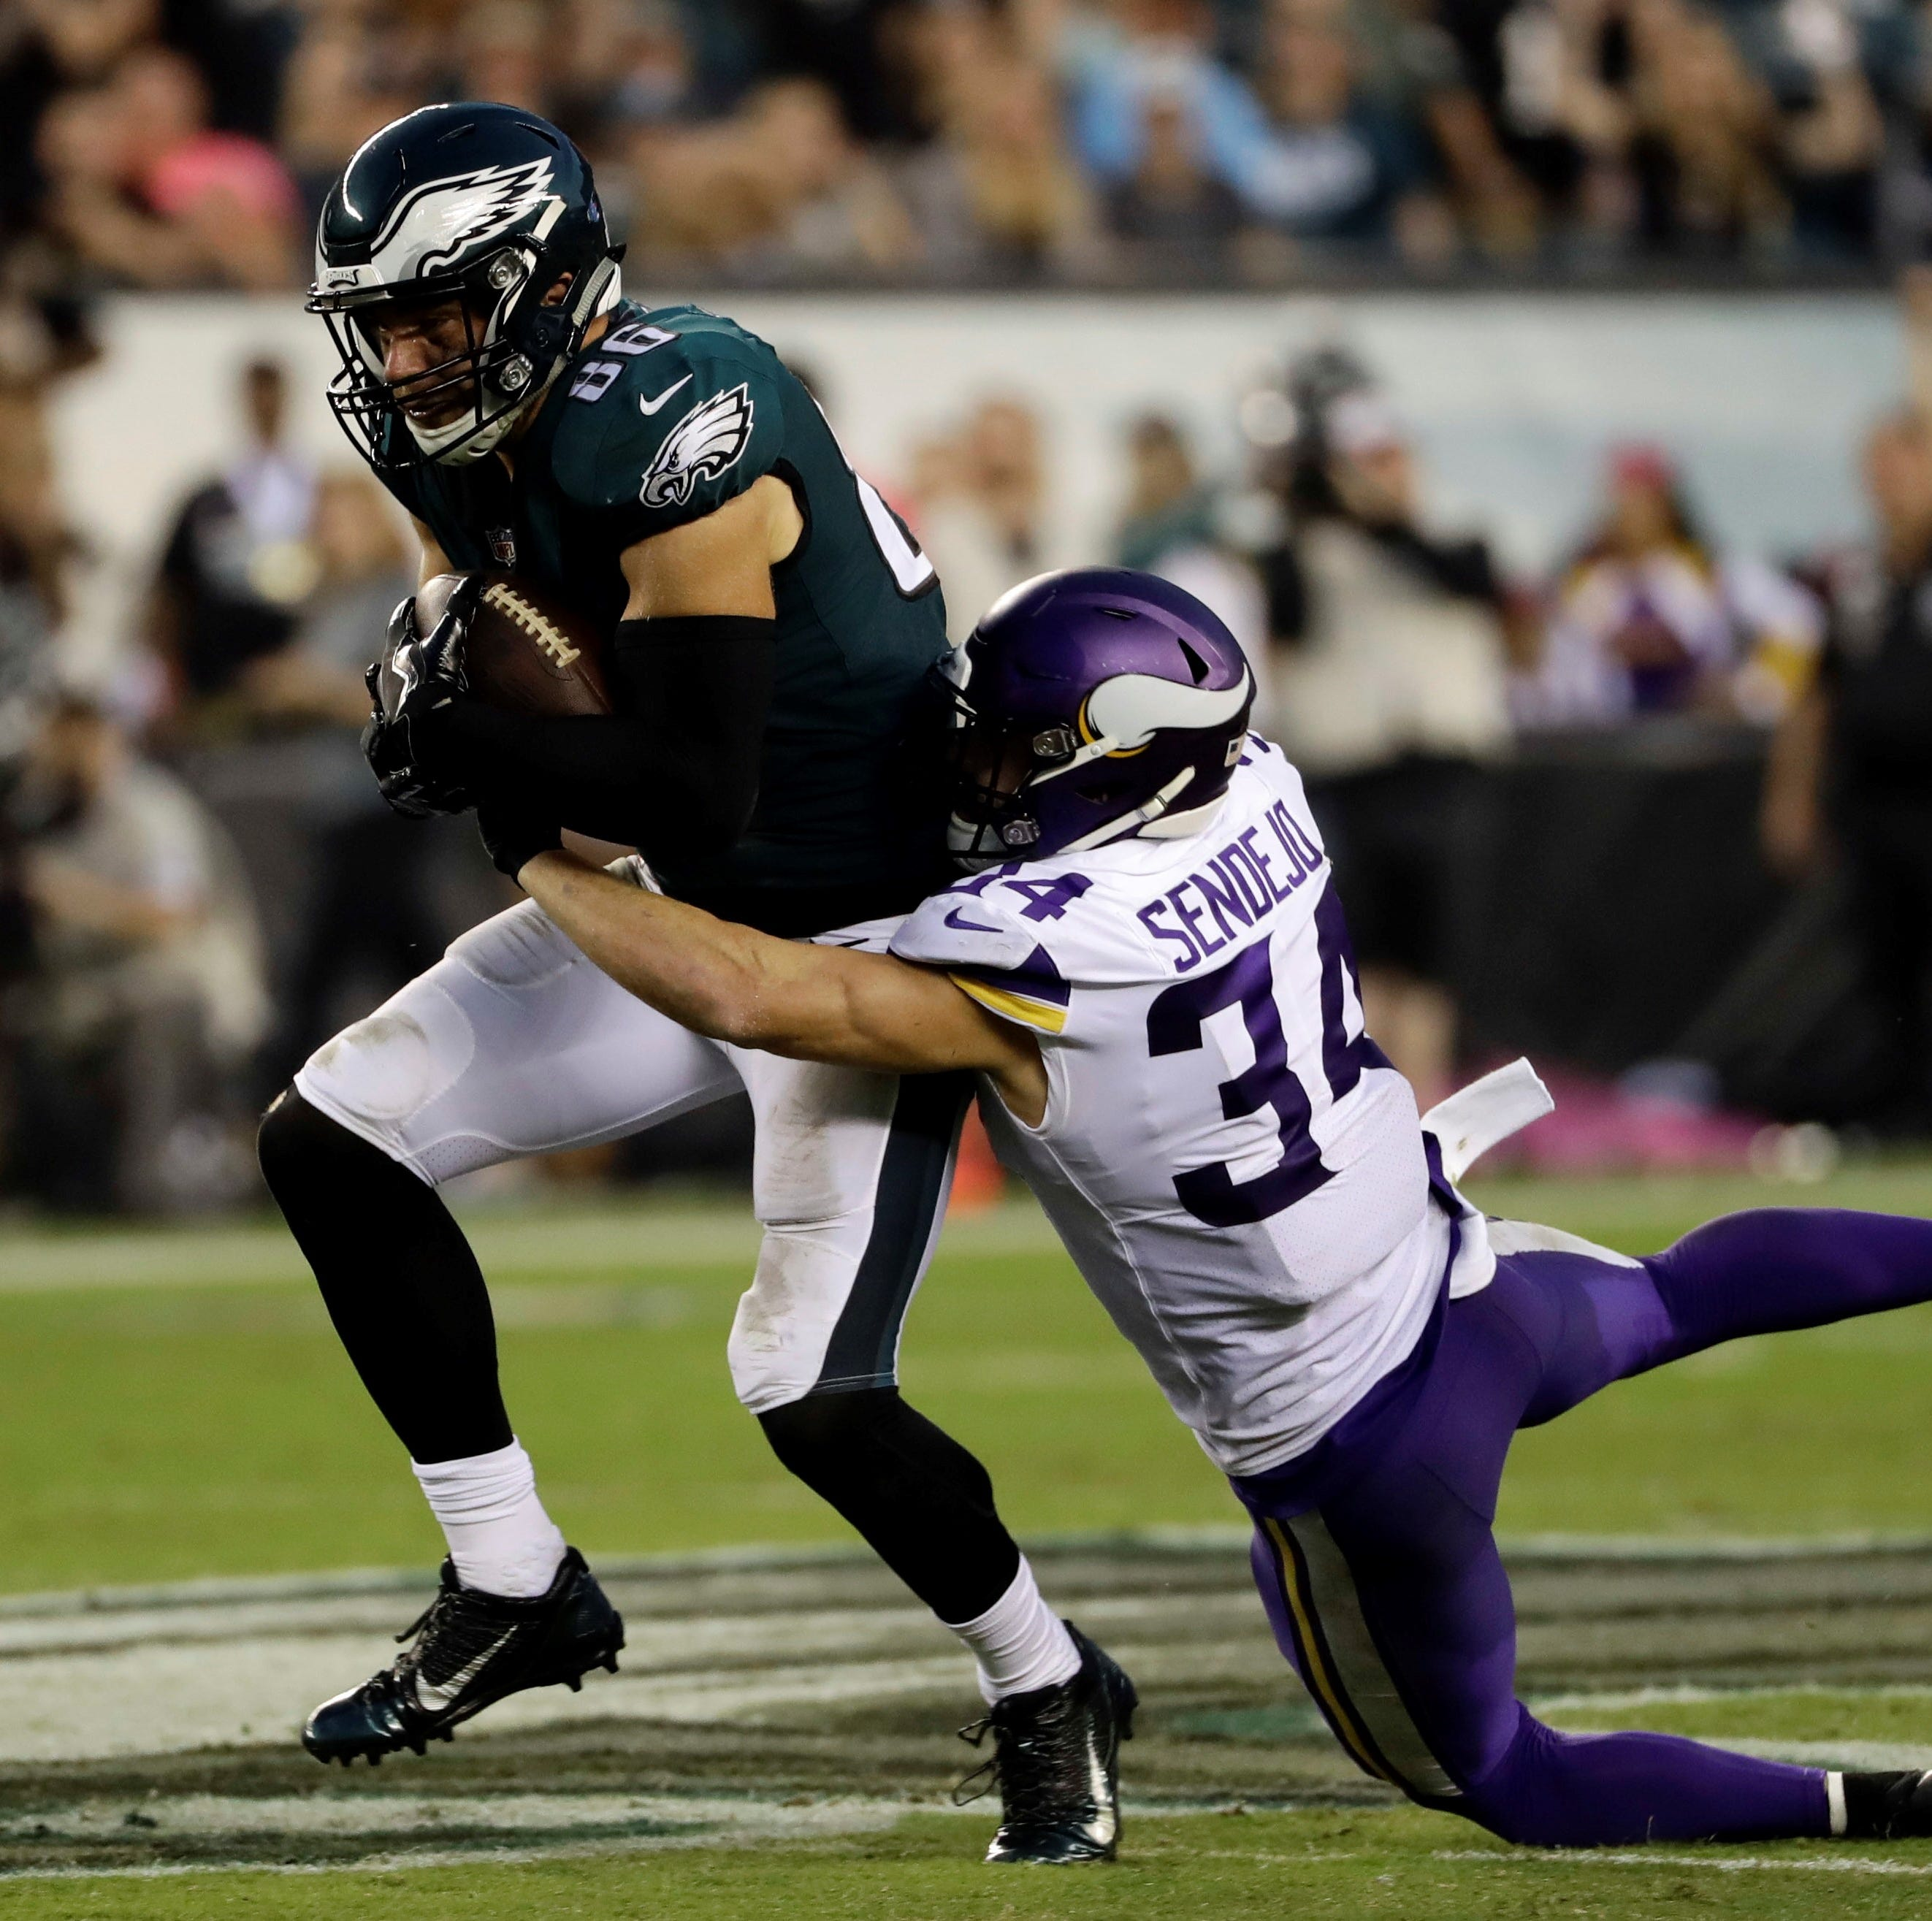 Philadelphia Eagles fall to 2-3 on season after 23-21 setback against Minnesota Vikings